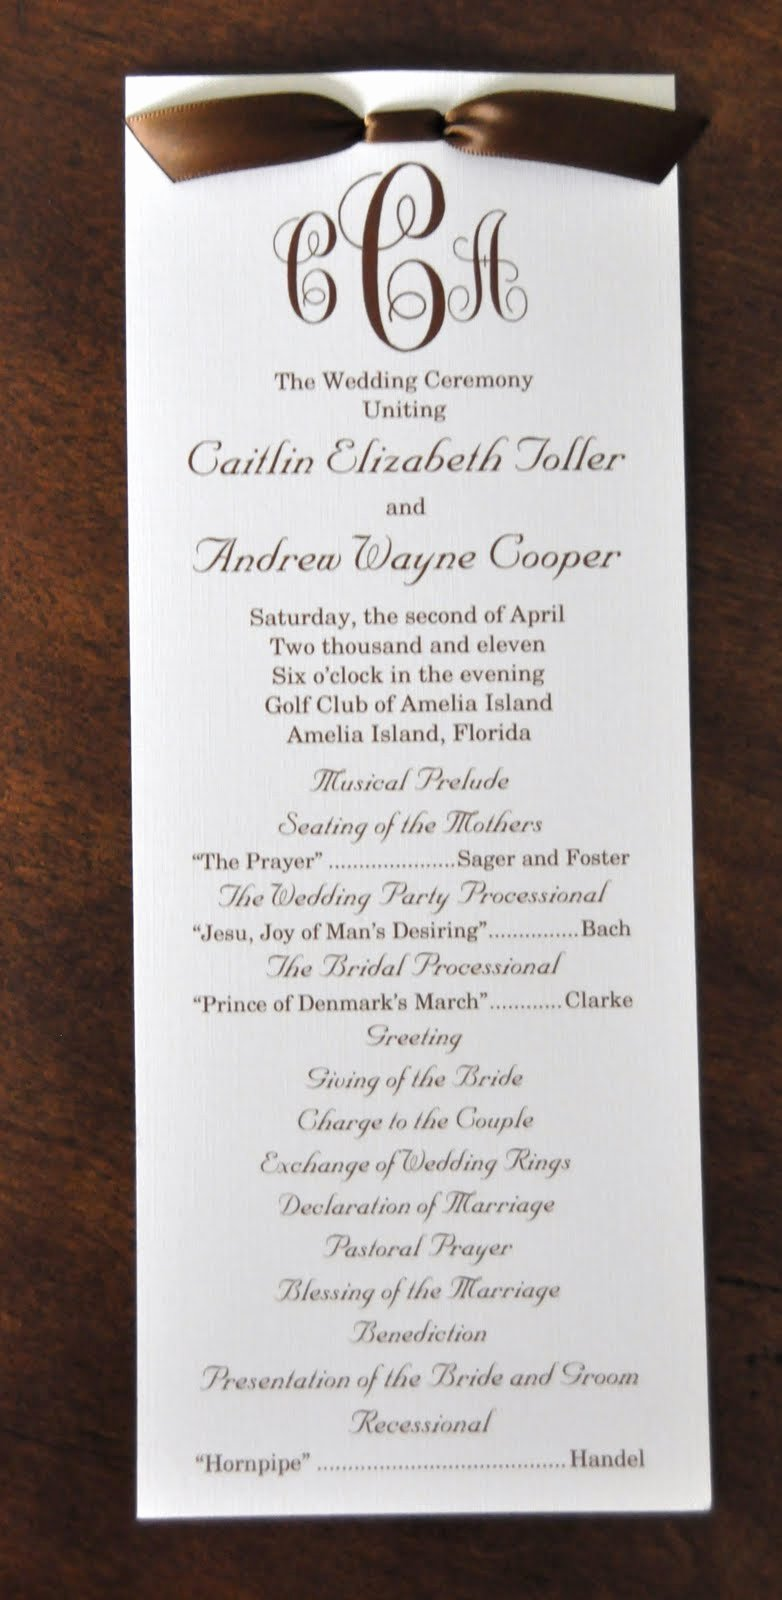 Samples Of Wedding Programs Lovely Sample Wedding Programs Caitlin andrew Wedding Programs